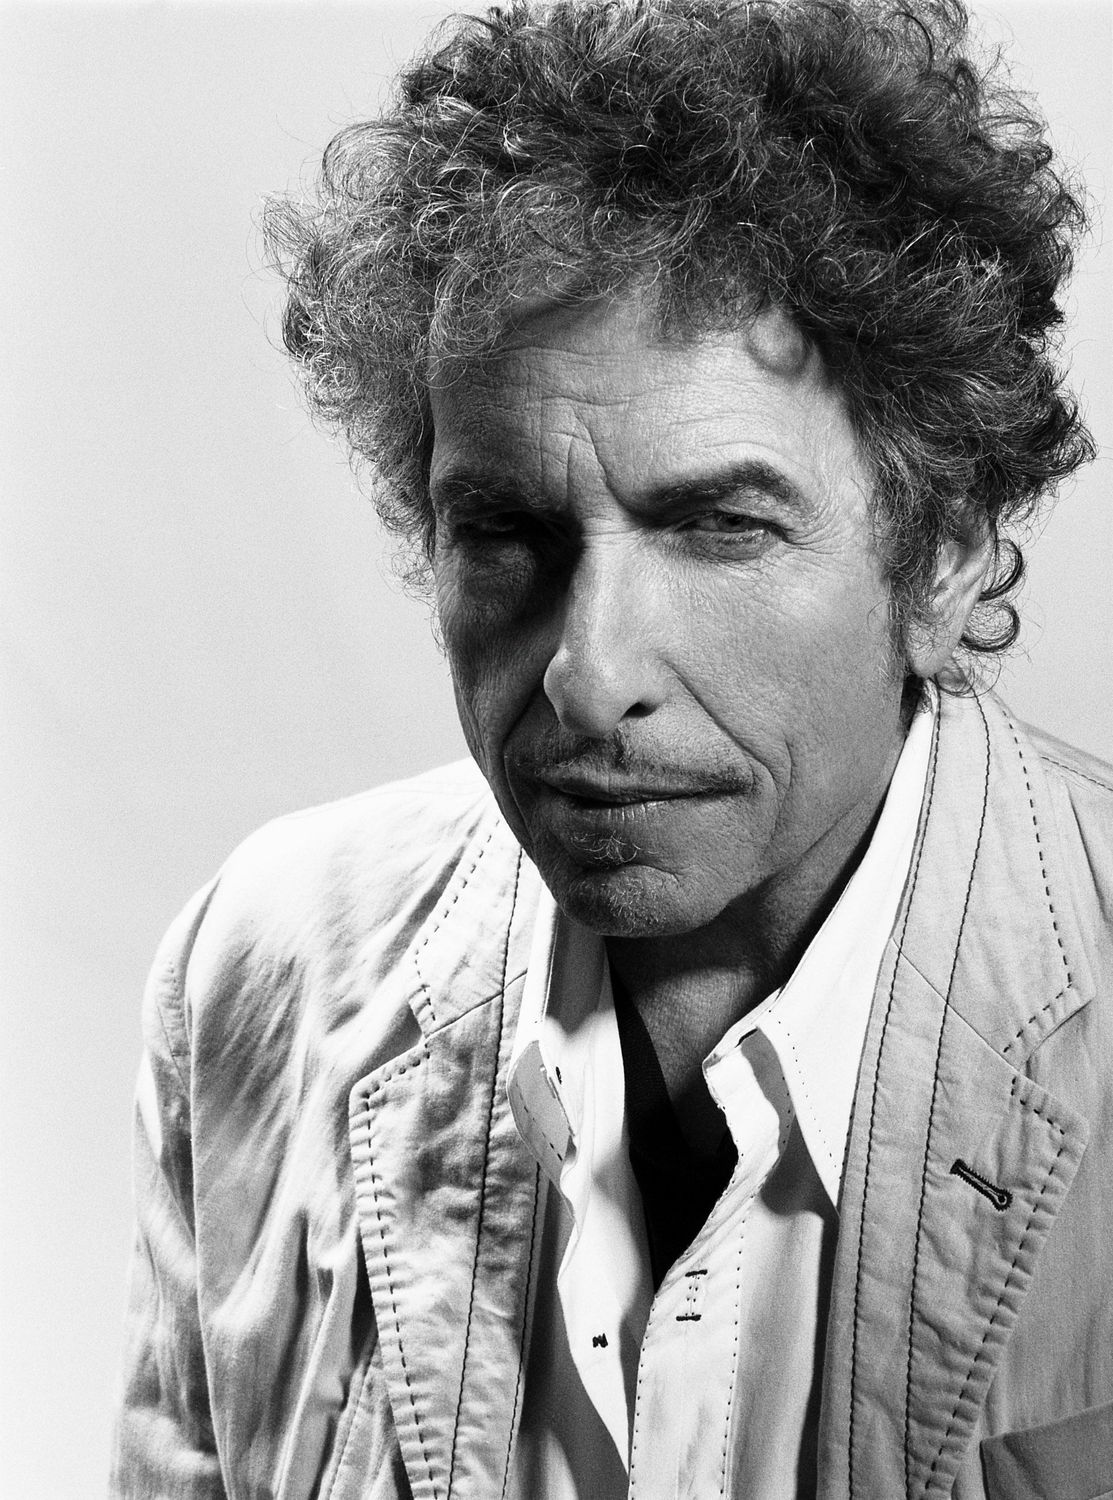 Bob Dylan  Lay Lady Lay - favorite song